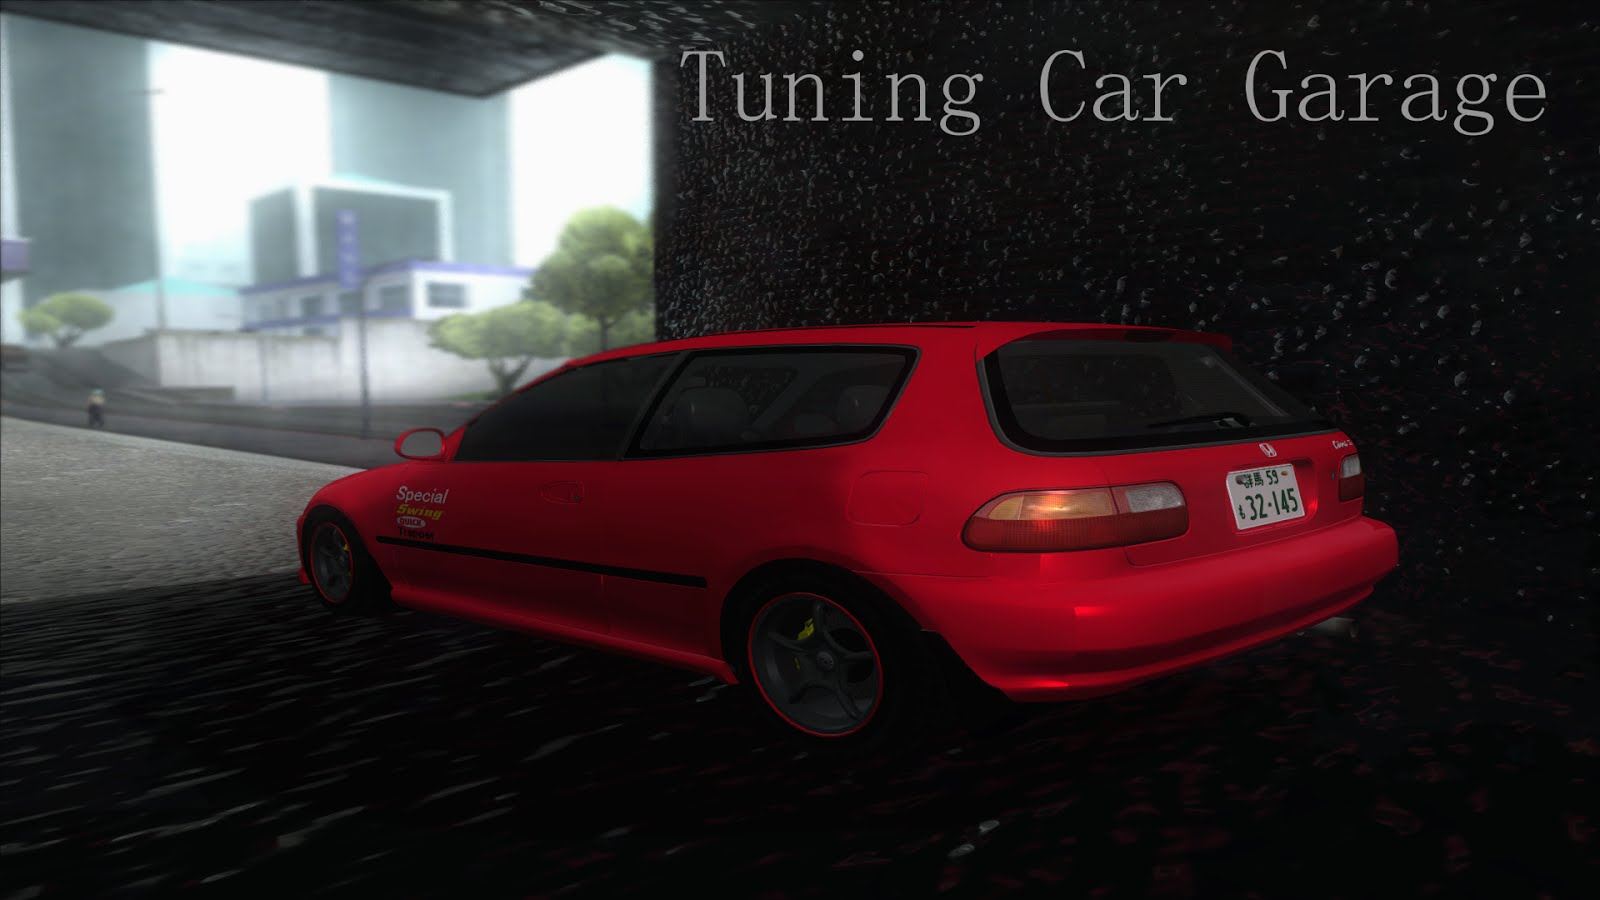 Tuning Car Garage